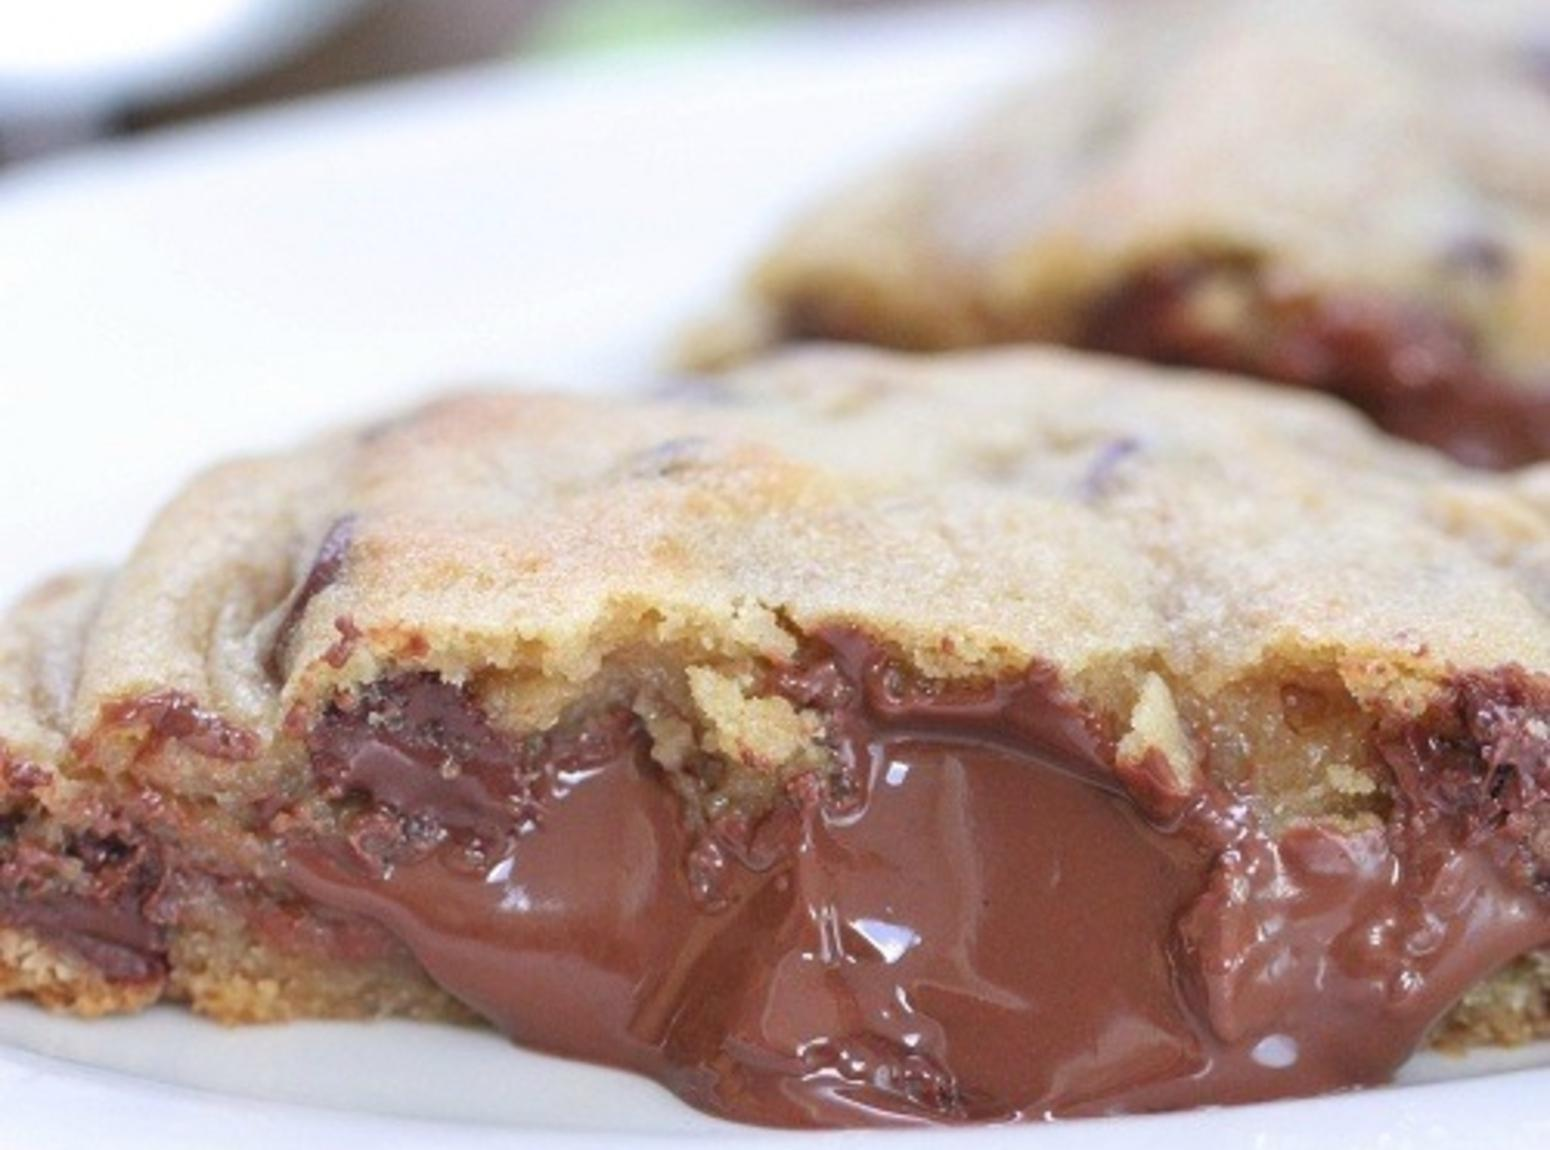 Giant Hershey Kiss Stuffed Chocolate Chip Cookies Recipe | Just A ...